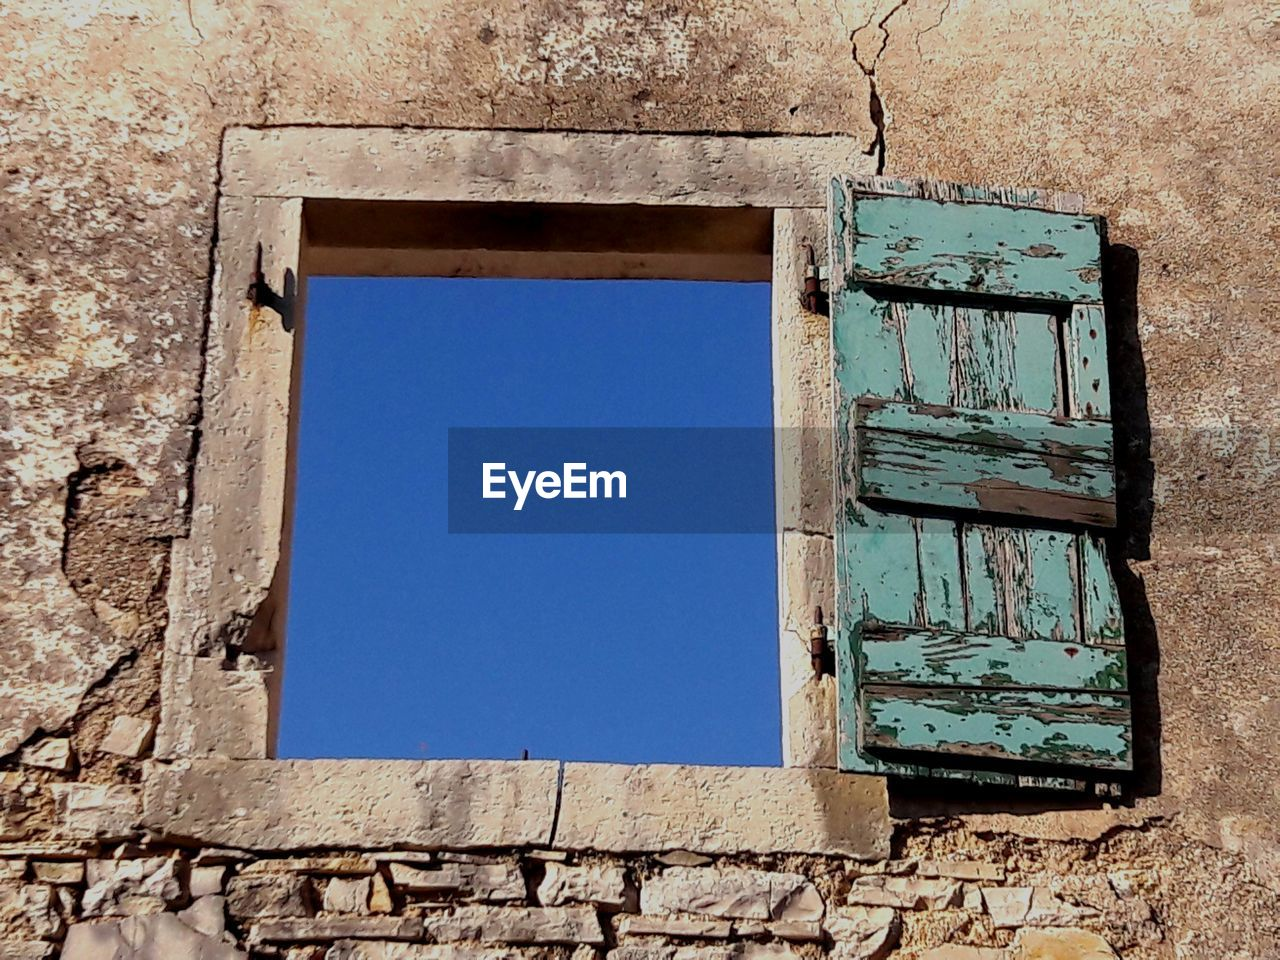 architecture, built structure, window, building exterior, no people, day, wall - building feature, wall, damaged, building, old, abandoned, low angle view, blue, house, outdoors, broken, clear sky, sky, rectangle, deterioration, window frame